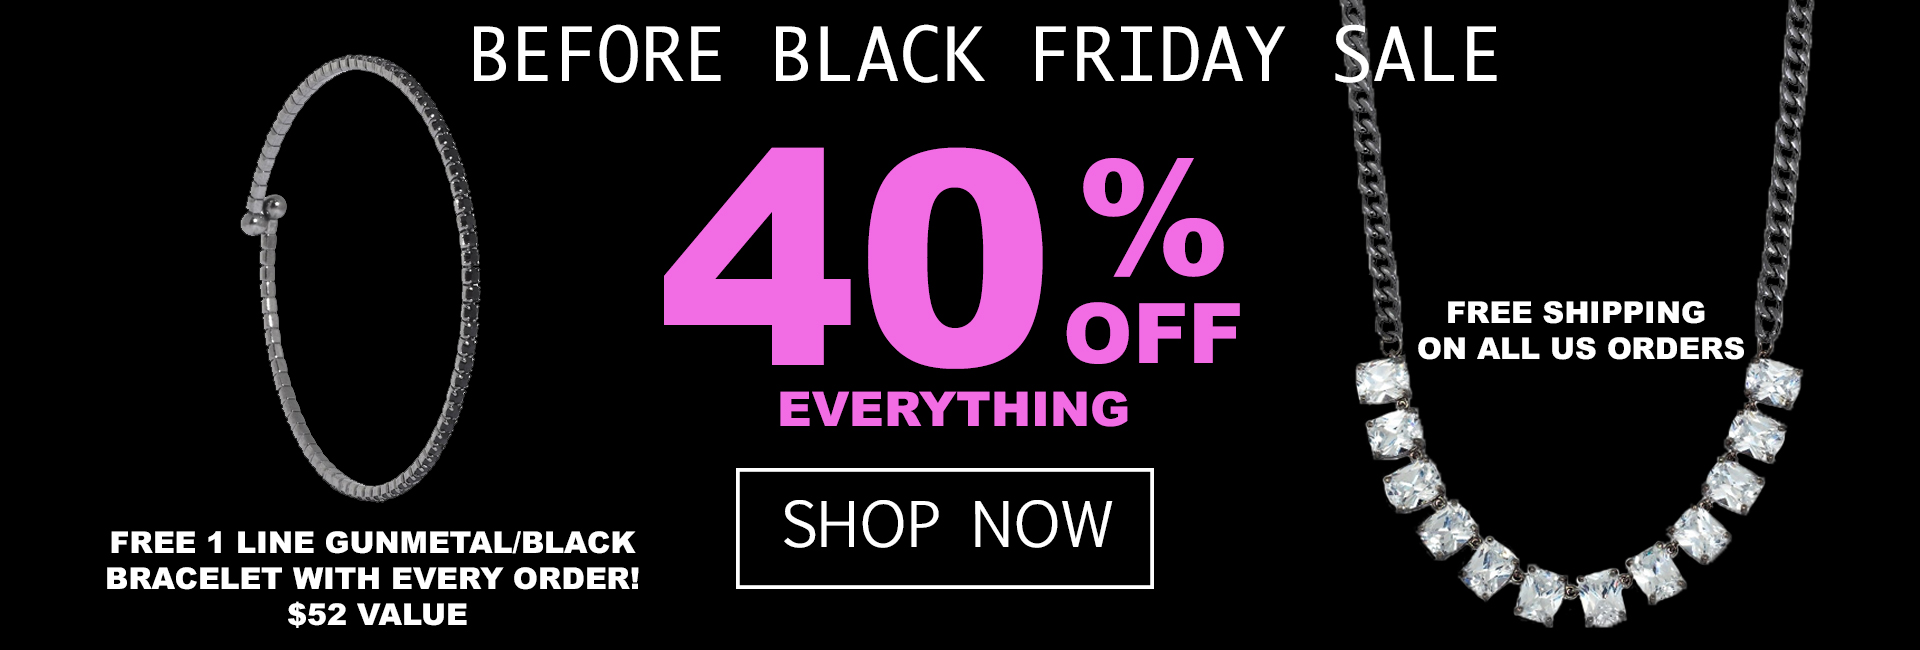 Shop our Black Friday Sale Now for 40% OFF Everything, Free Shipping, and Free Gift with Purchase